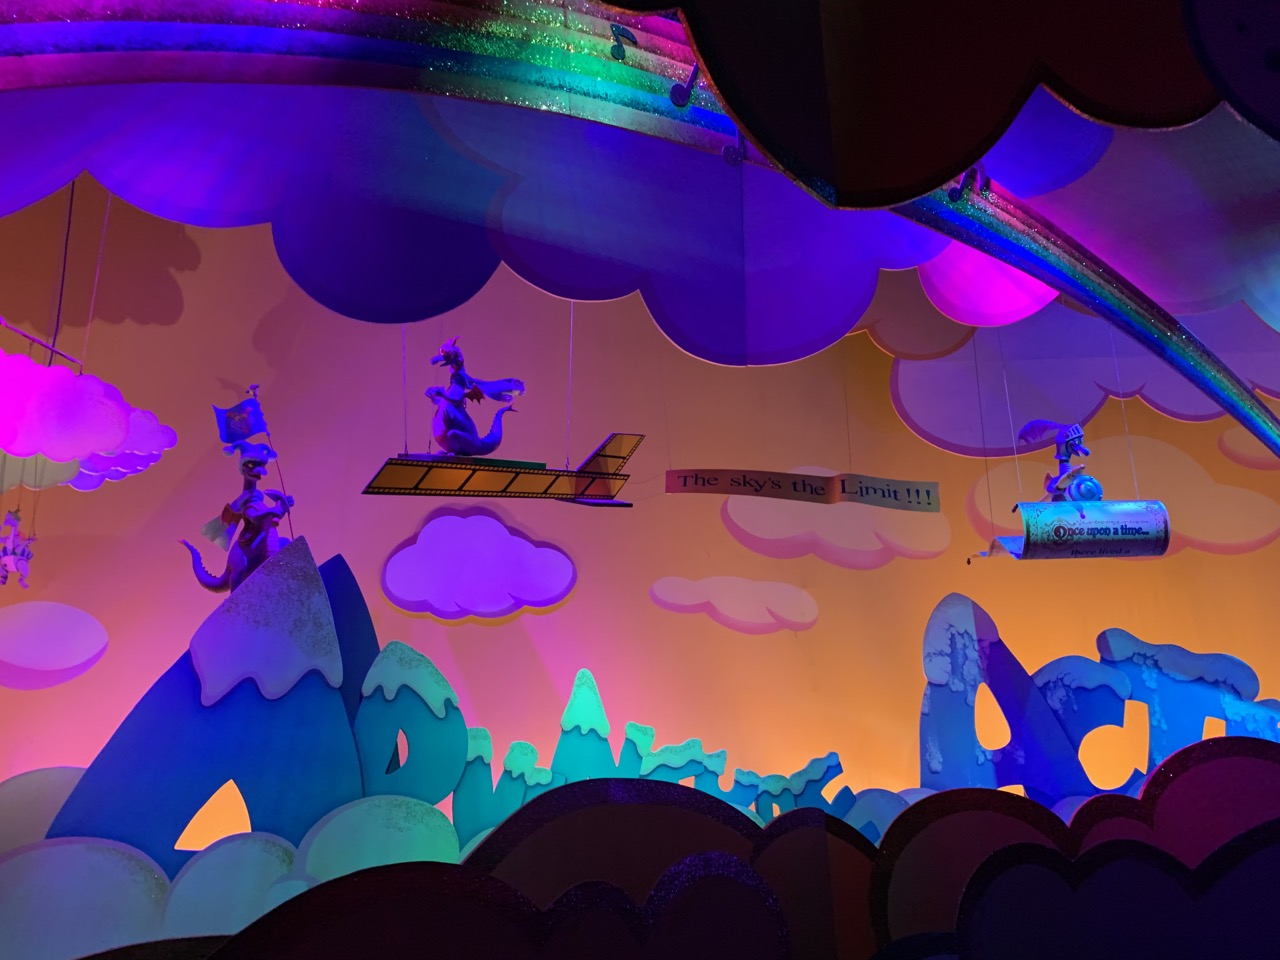 disney world trip report early summer 2019 day four 45 figment.jpeg